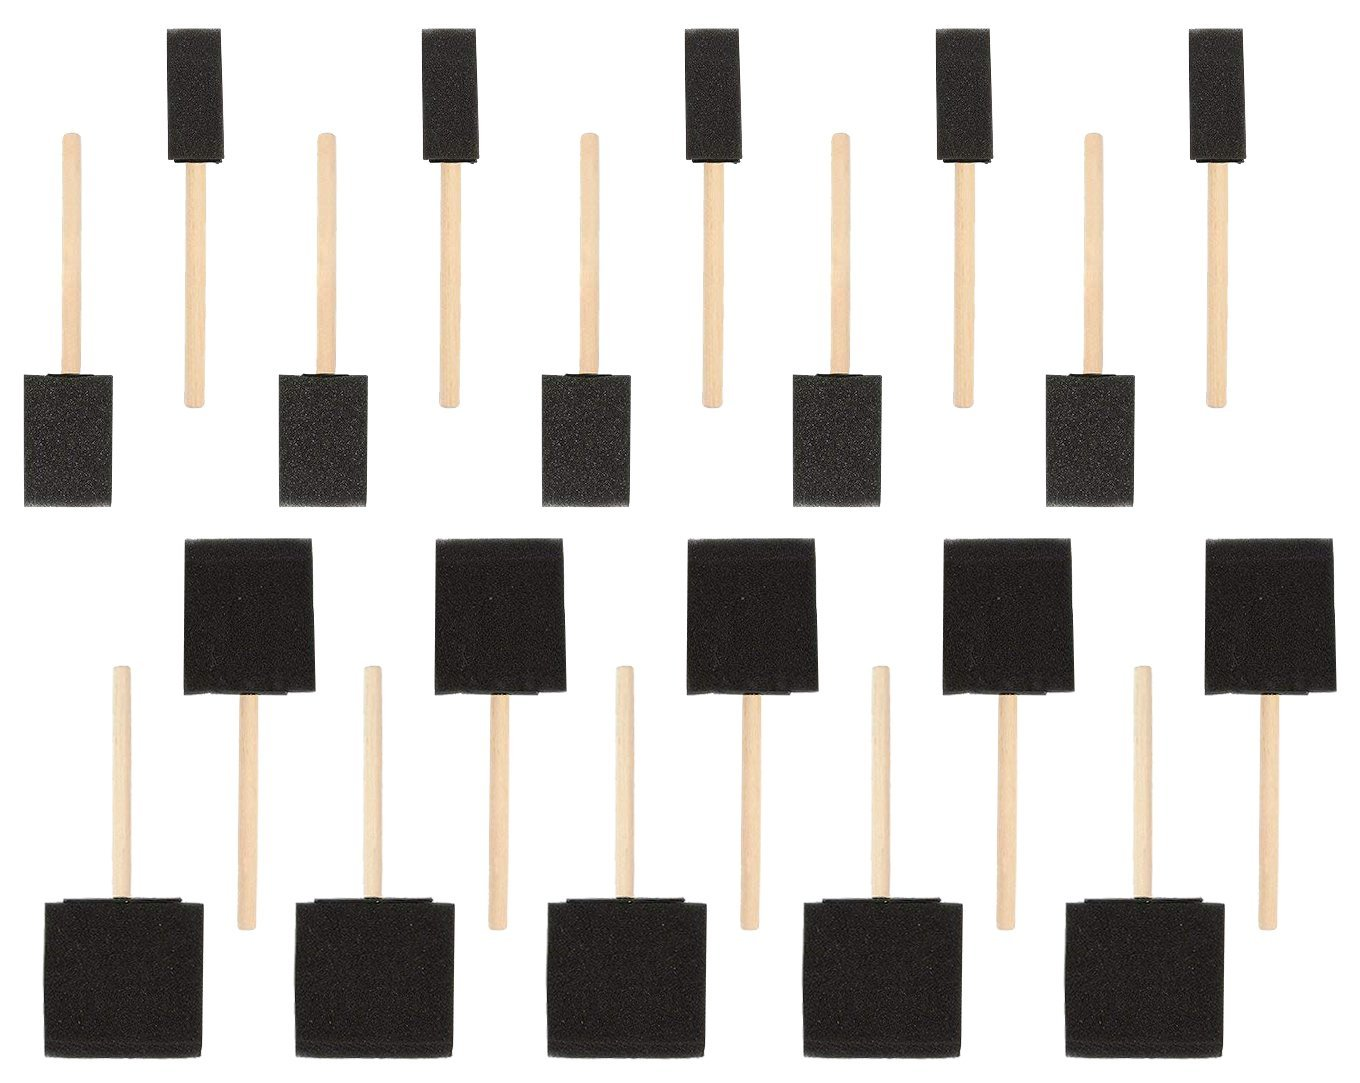 20-Pack Foam Paint Brush Set - 4 Different Sizes Poly Foam Sponge Brushes with Wooden Handles - Value Pack - Great for Acrylics, Oil Stains, Varnishes, Watercolor, Painting, Crafts, Art Juvale 4336956526